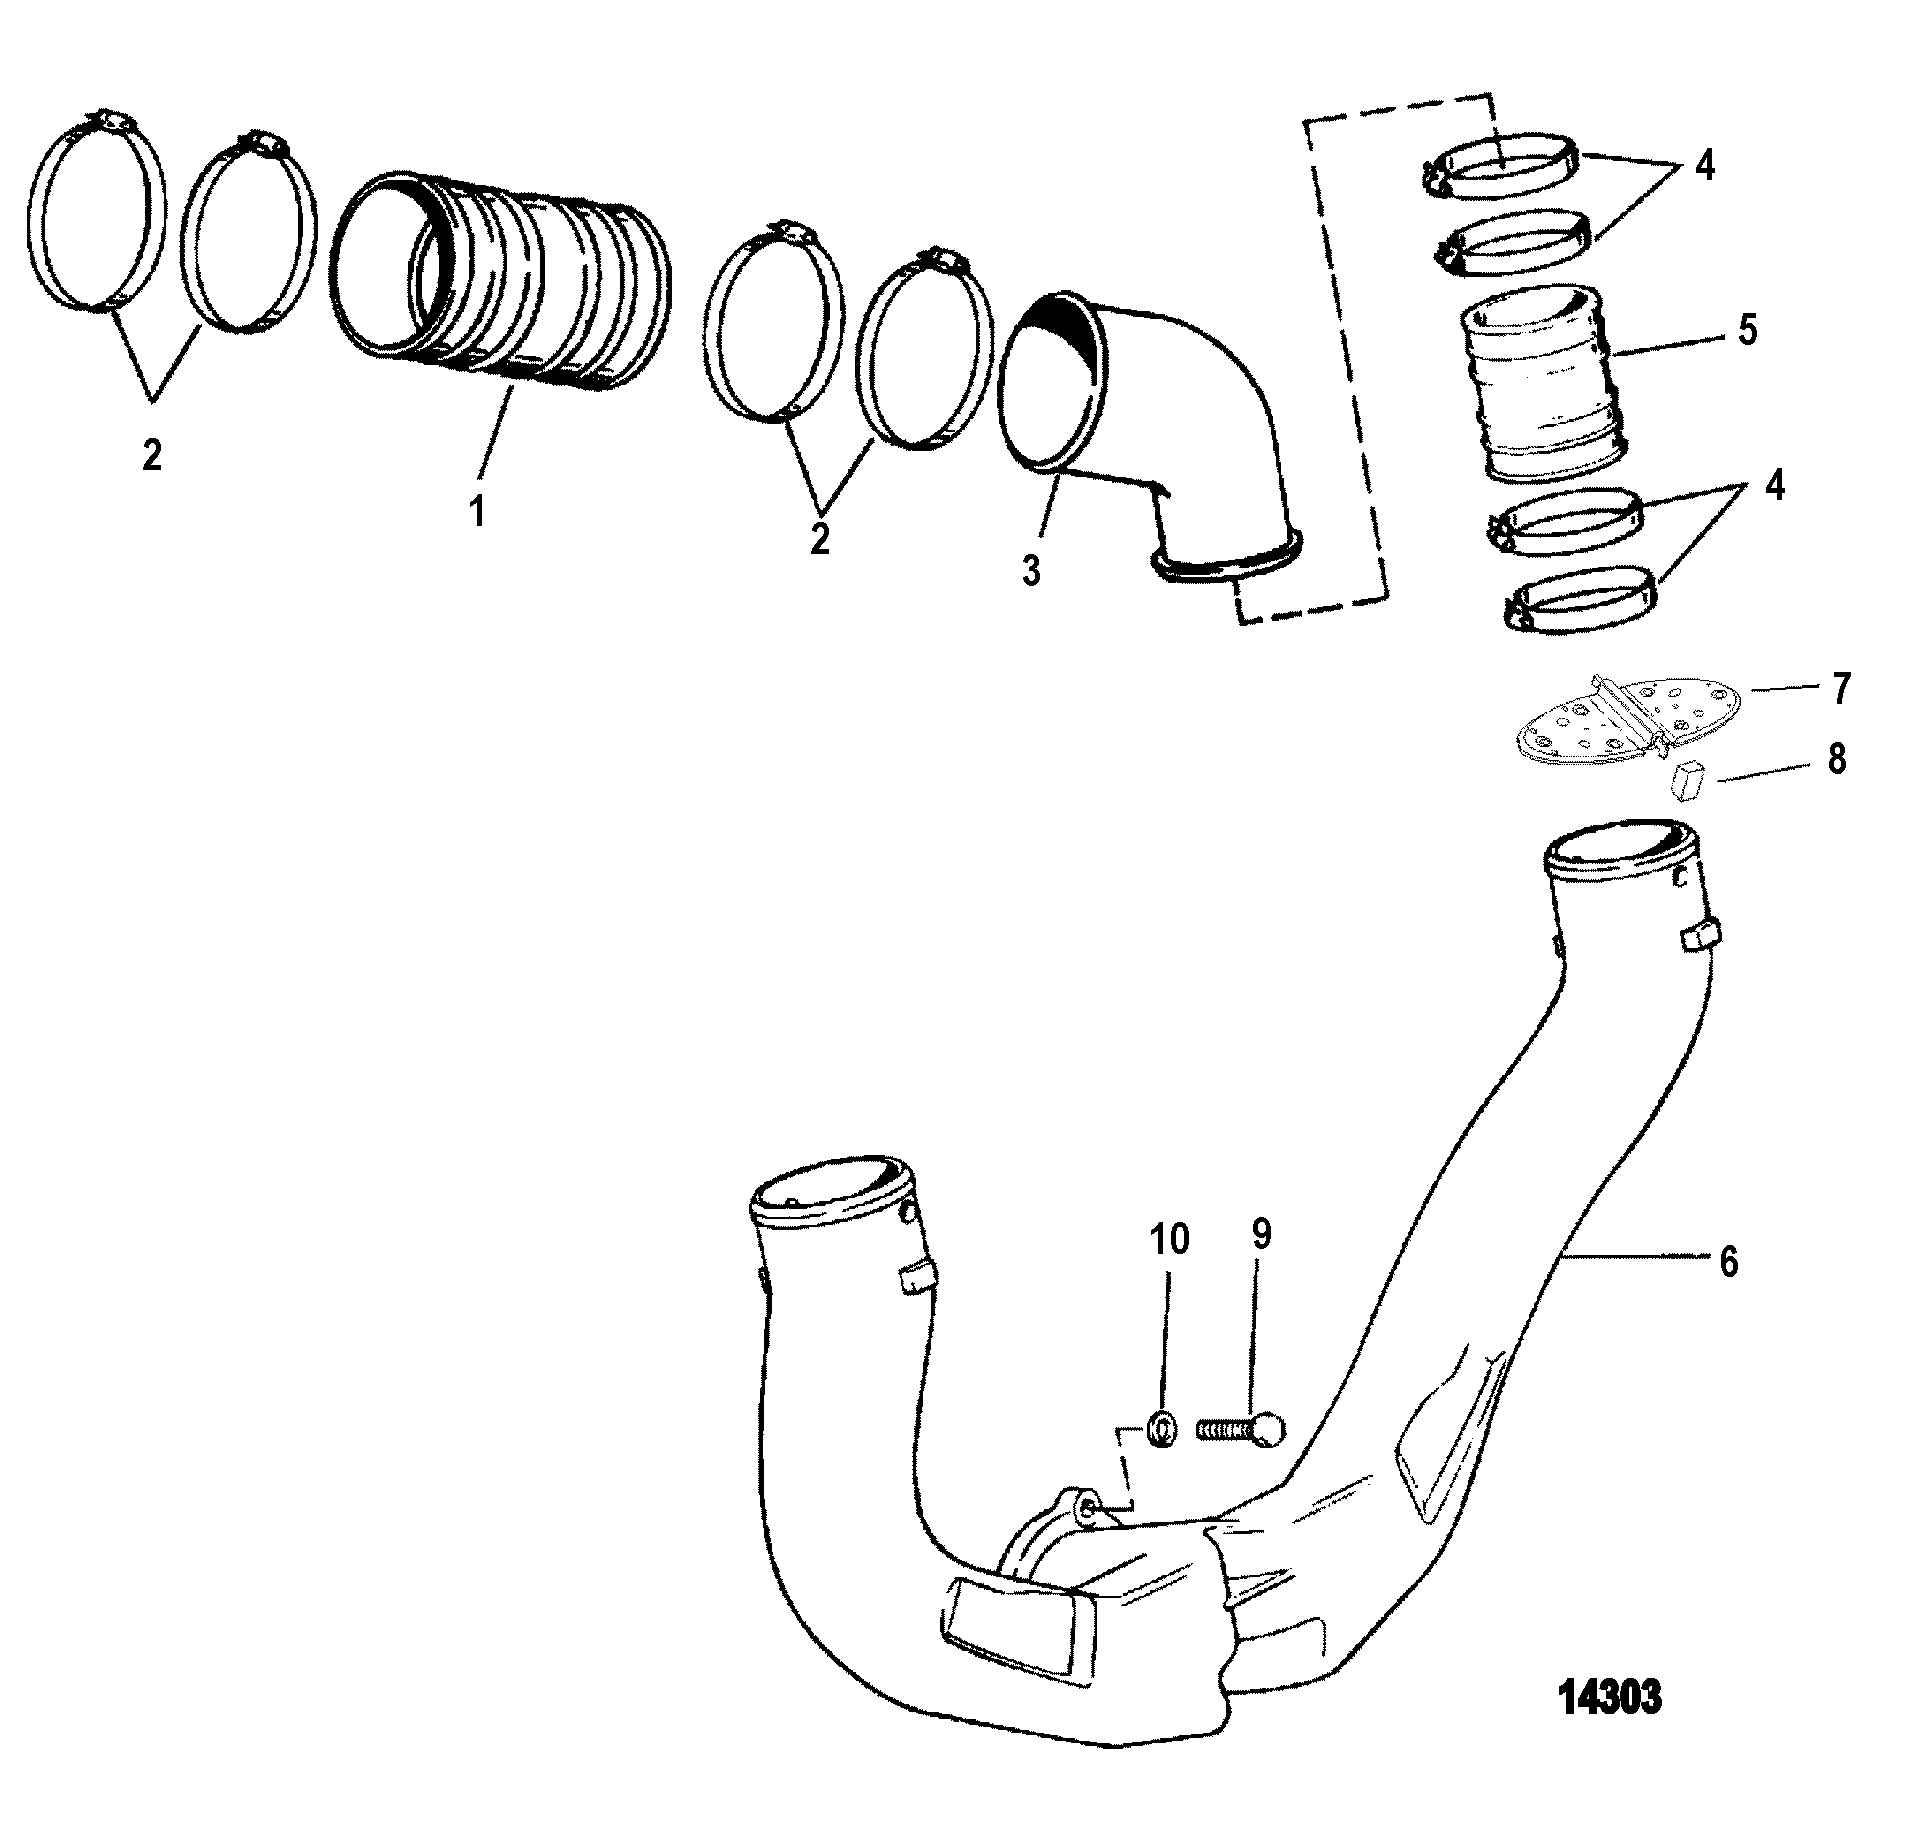 EXHAUST SYSTEM FOR MERCRUISER 4.3L/4.3LX ALPHA ONE ENGINE